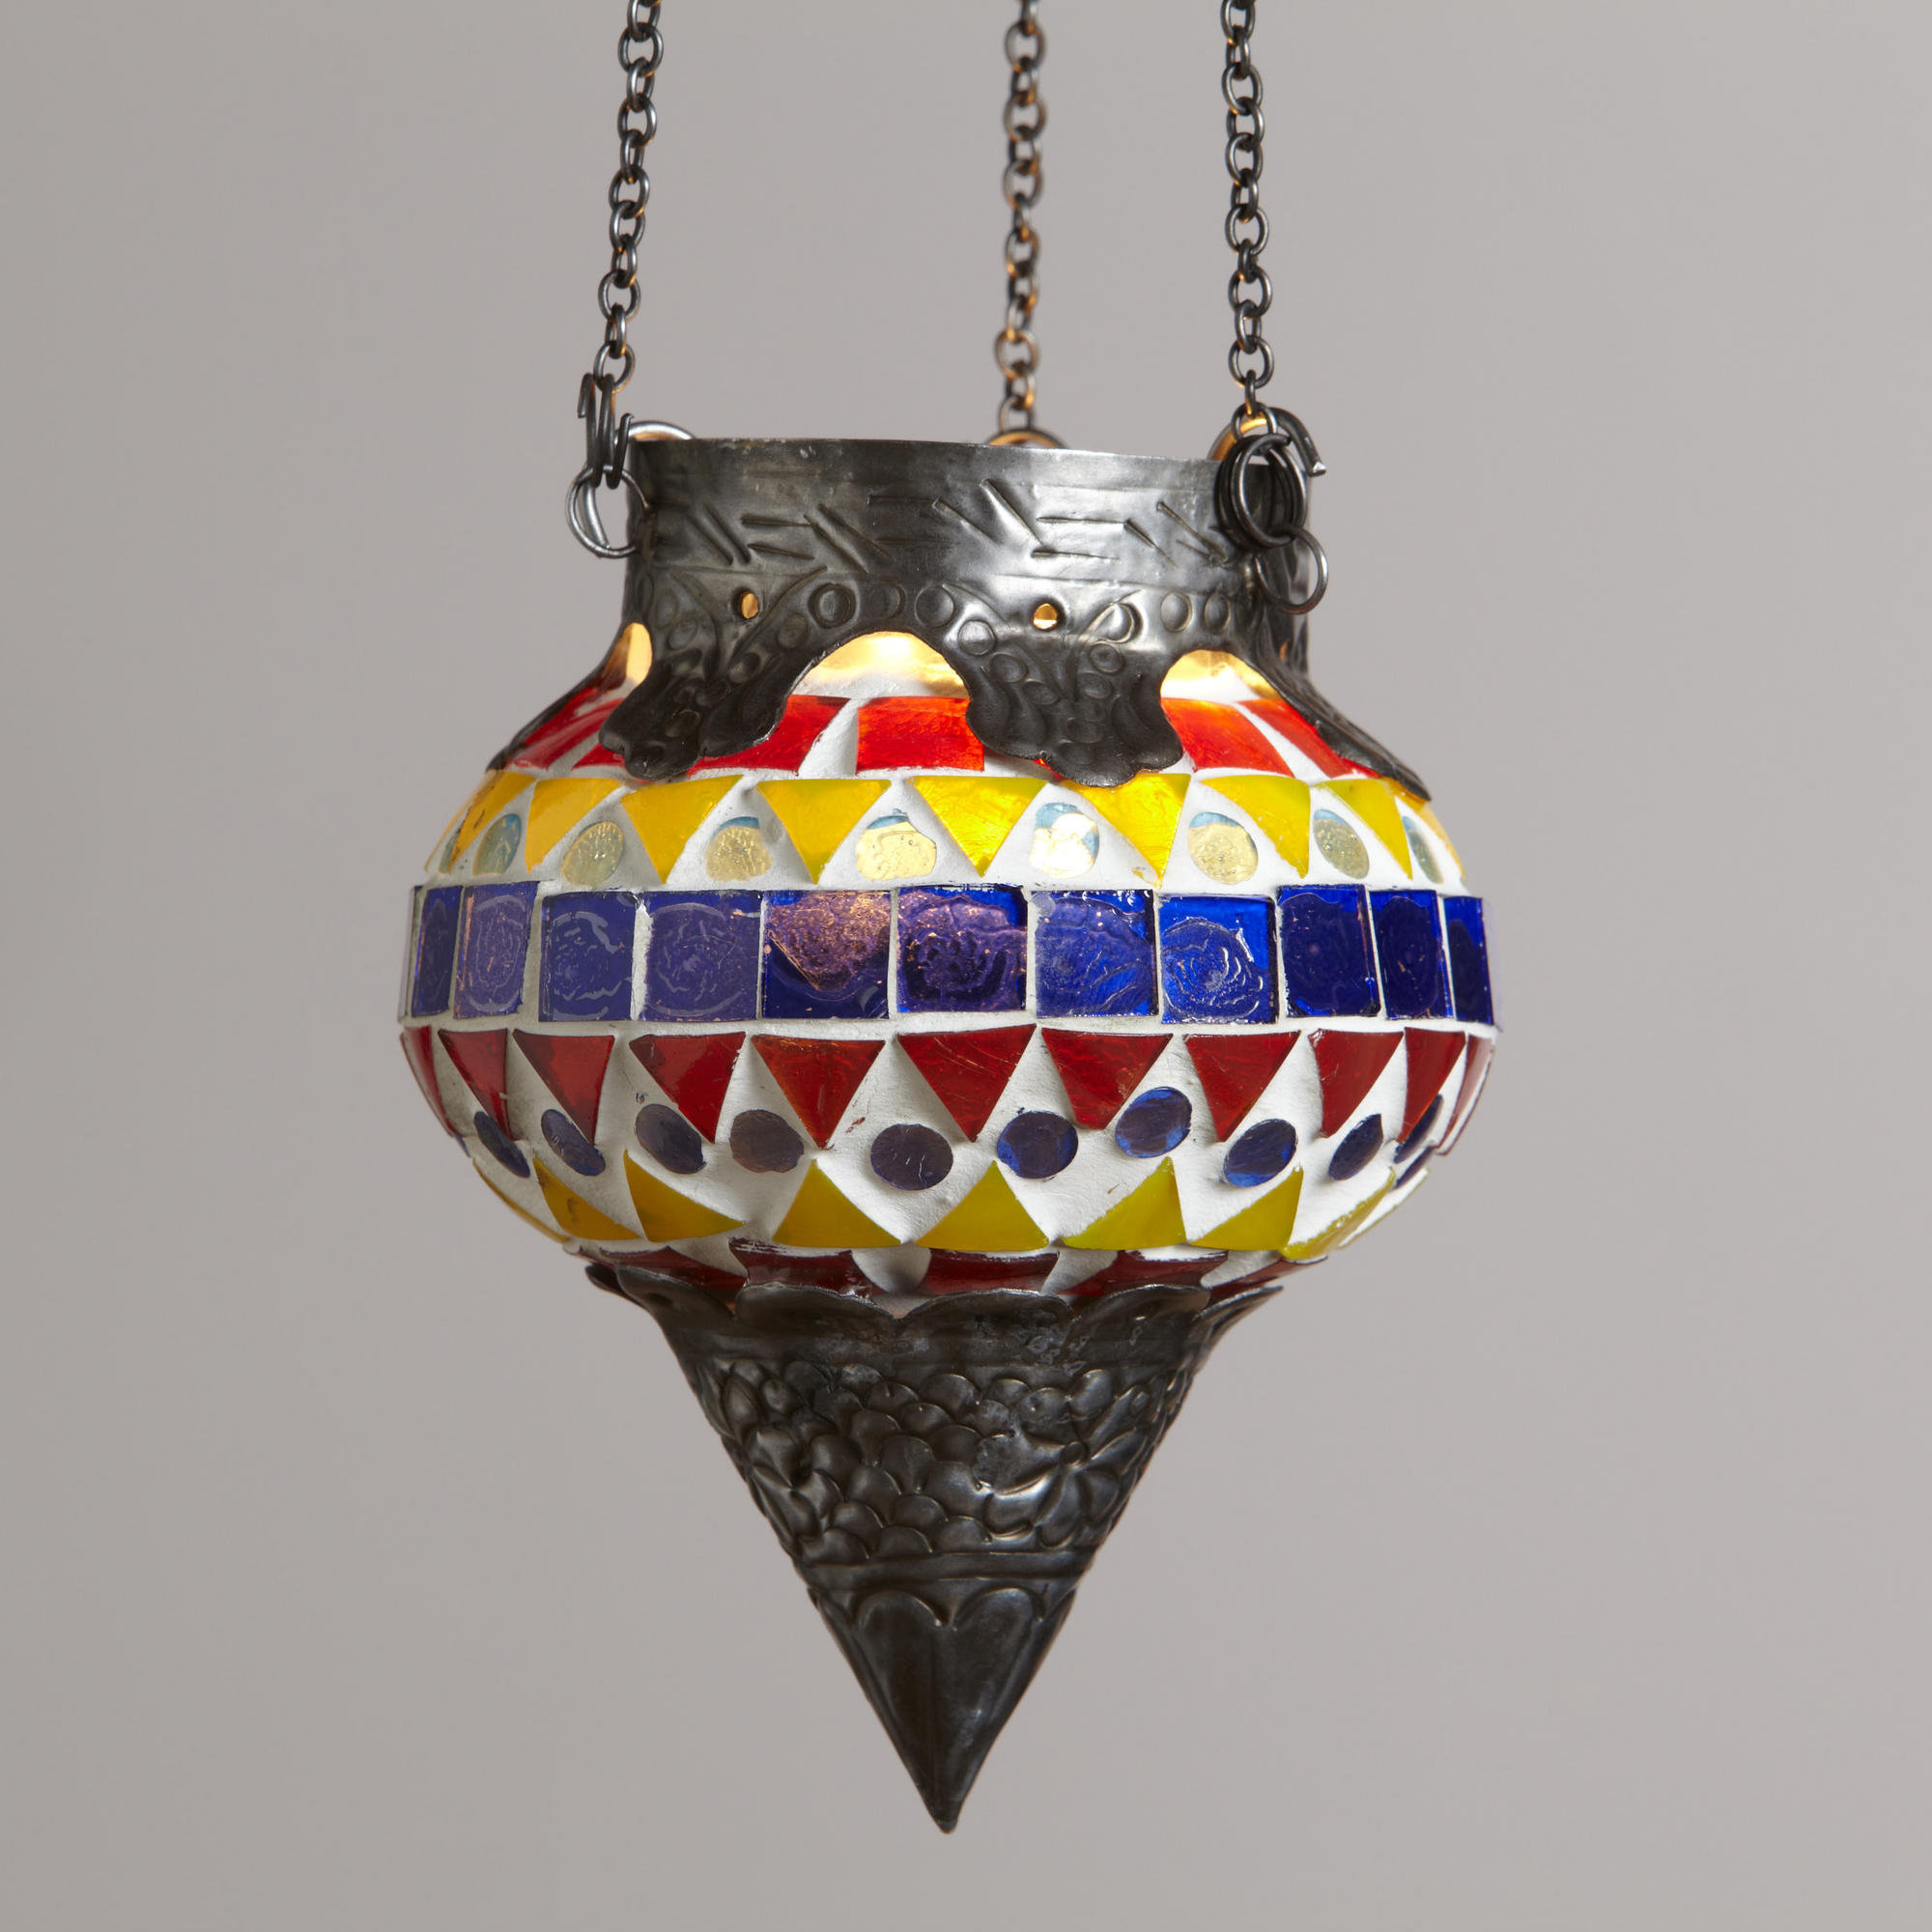 Small Tessera Mosaic Hanging Candleholder | World Market